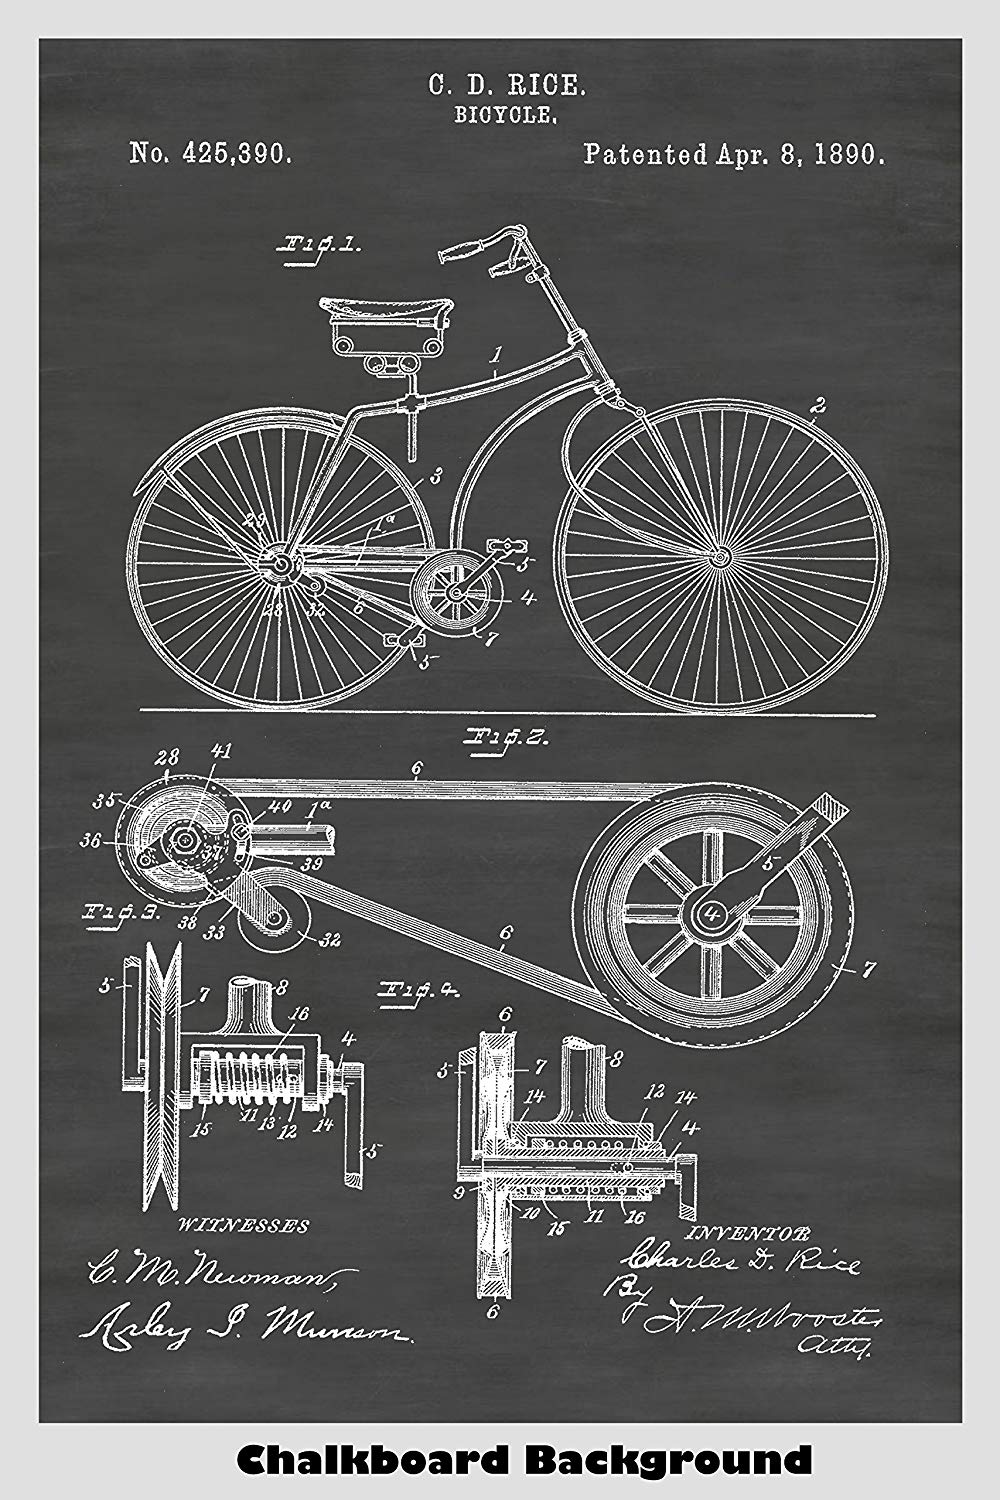 Victorian Era Bicycle With A Belt Drive System